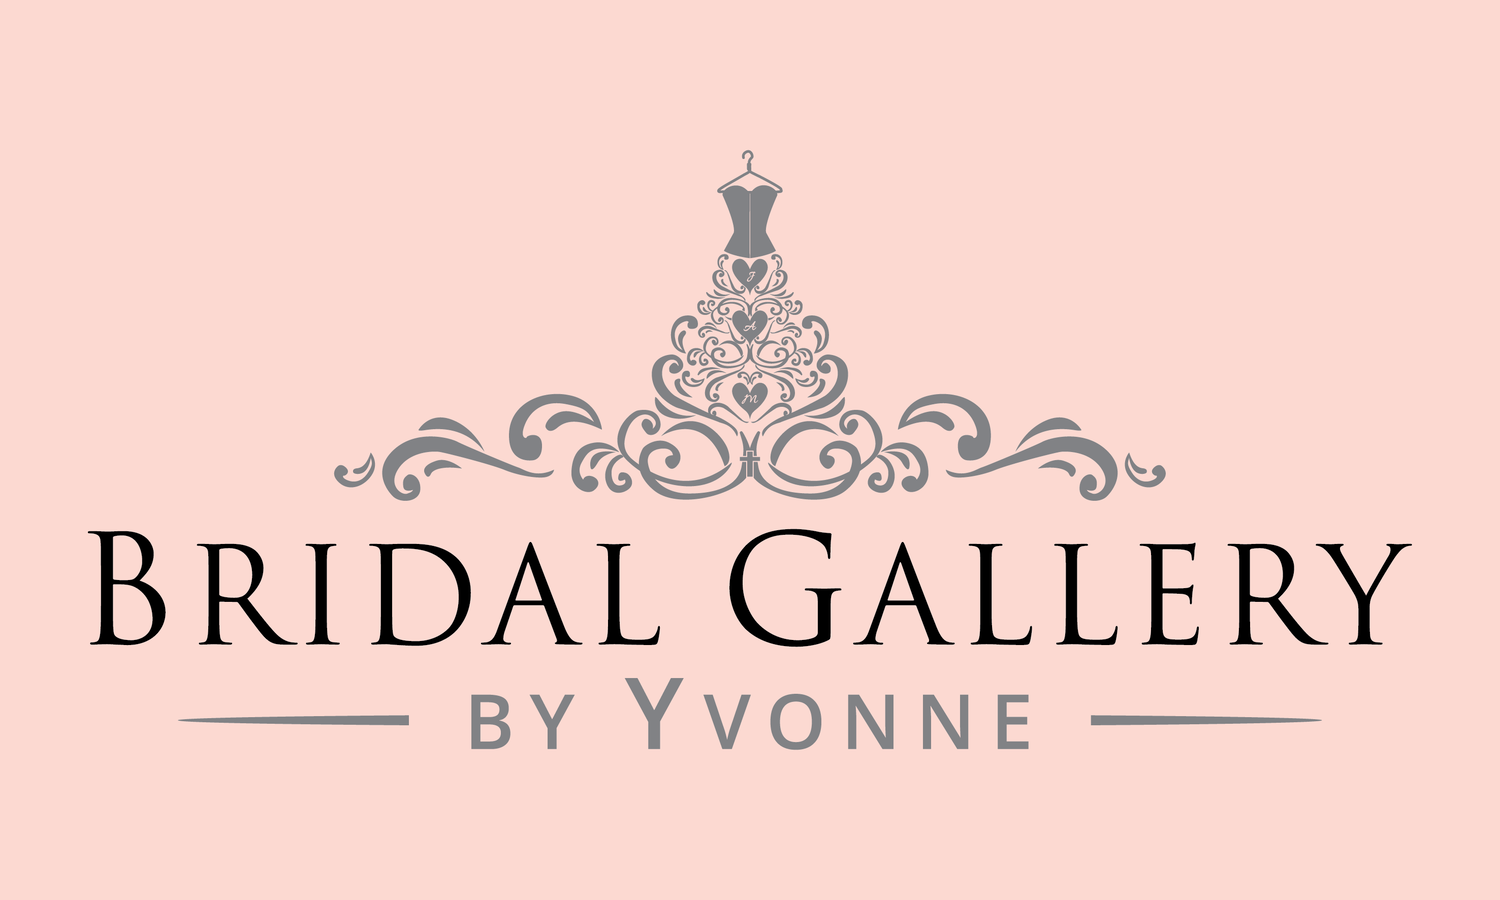 Bridal Gallery by Yvonne